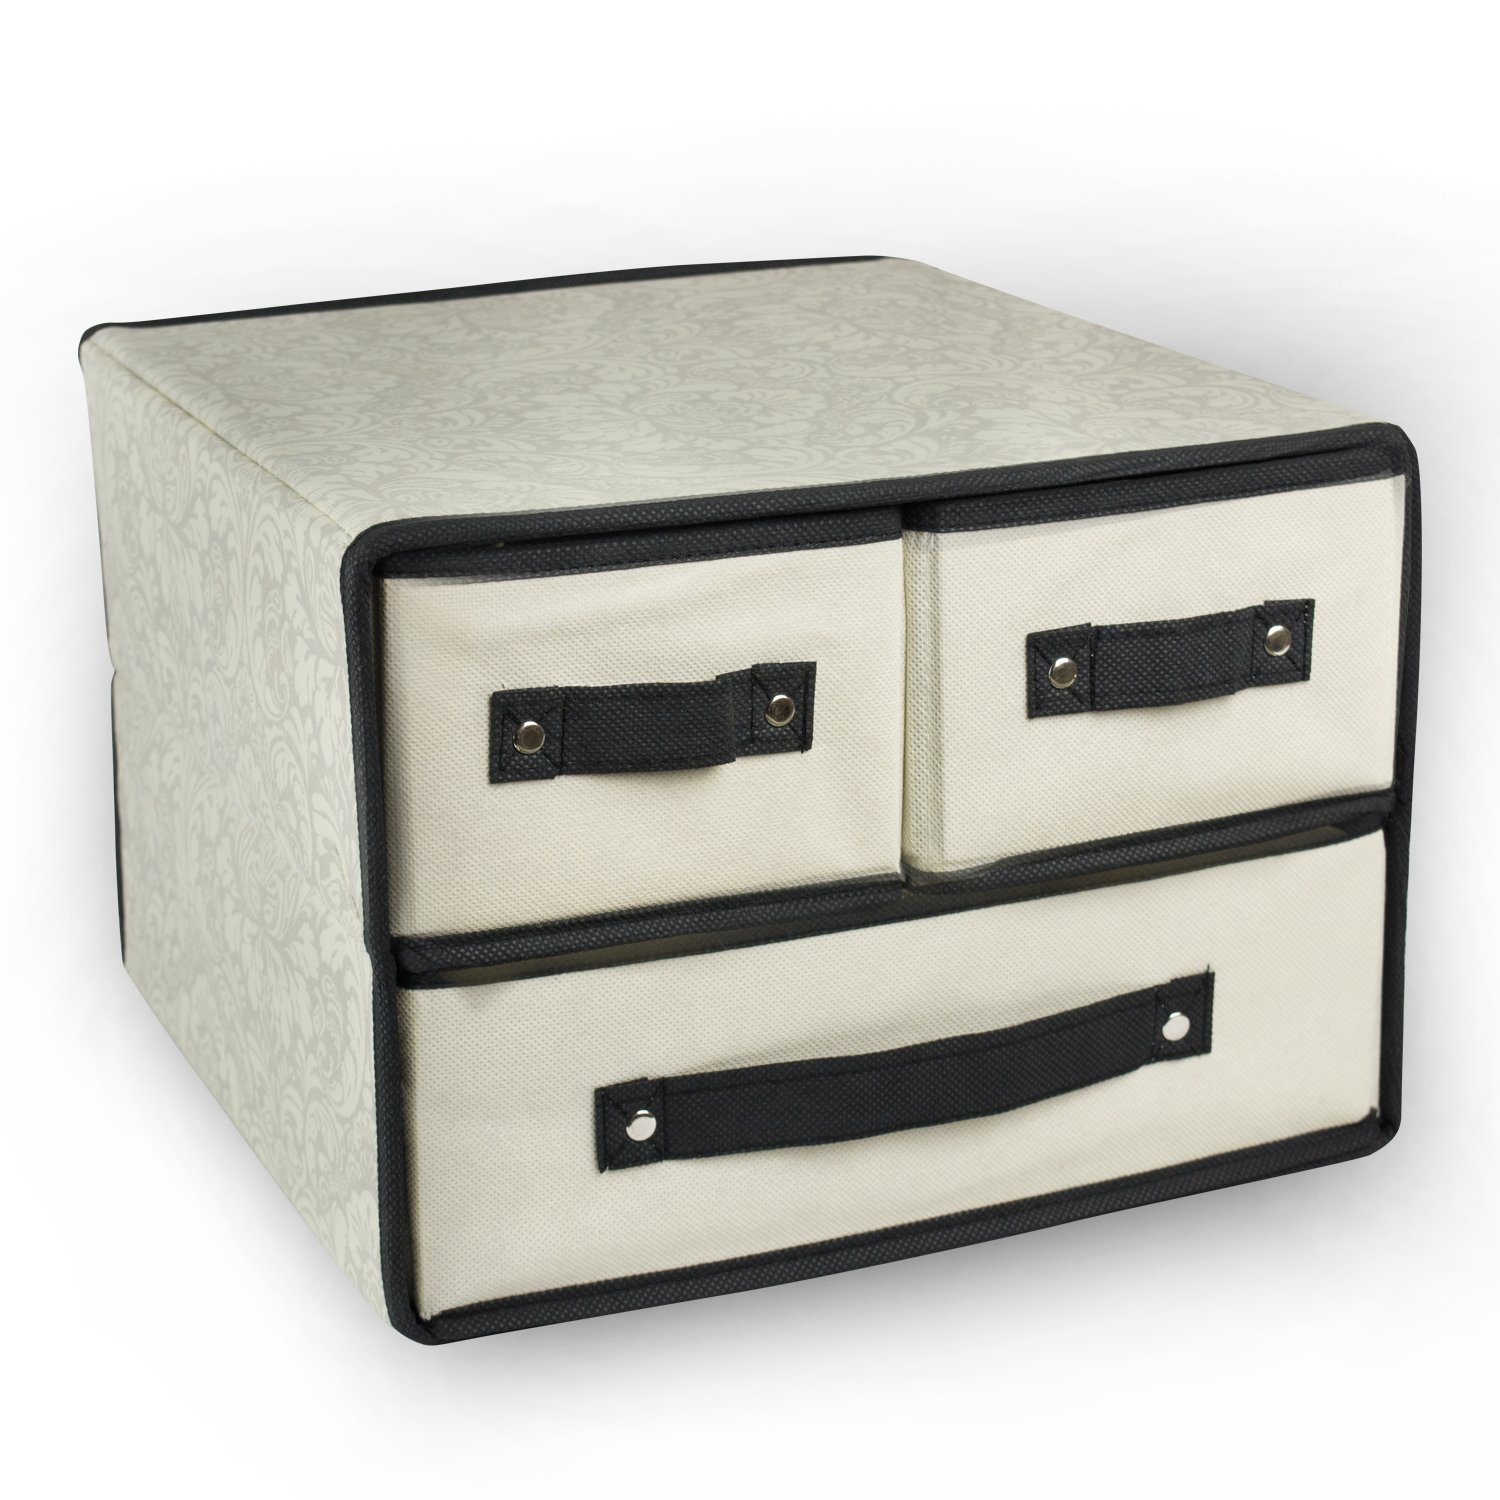 astounding after inspiration for home organization drawers before rubbermaid chest organizers depot closet of white trends kits organizer entrancing closets creative portable and designer system lowes with true